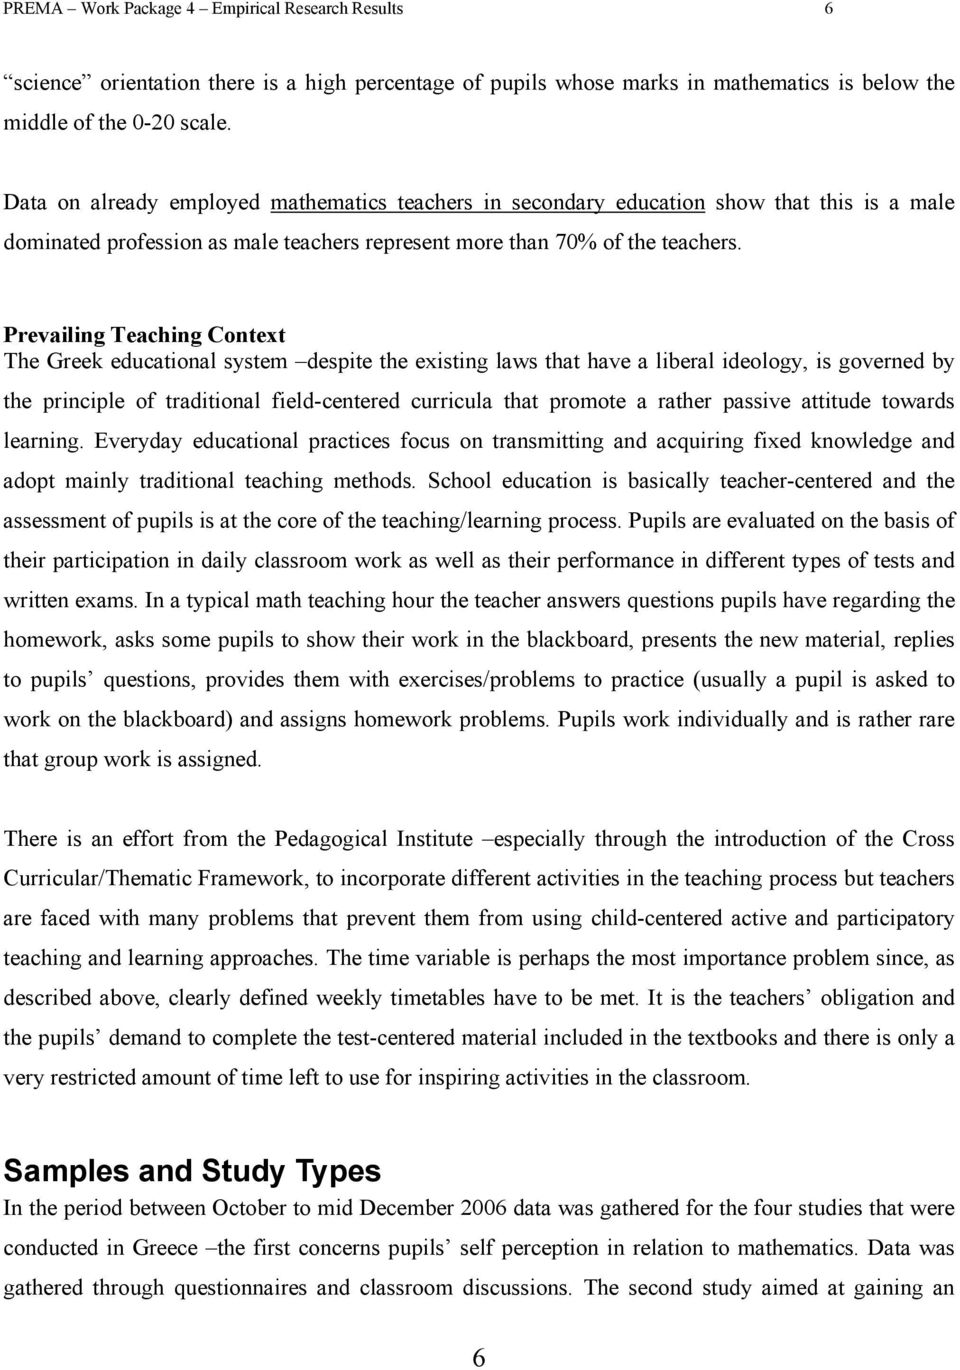 Prevailing Teaching Context The Greek educational system despite the existing laws that have a liberal ideology, is governed by the principle of traditional field-centered curricula that promote a